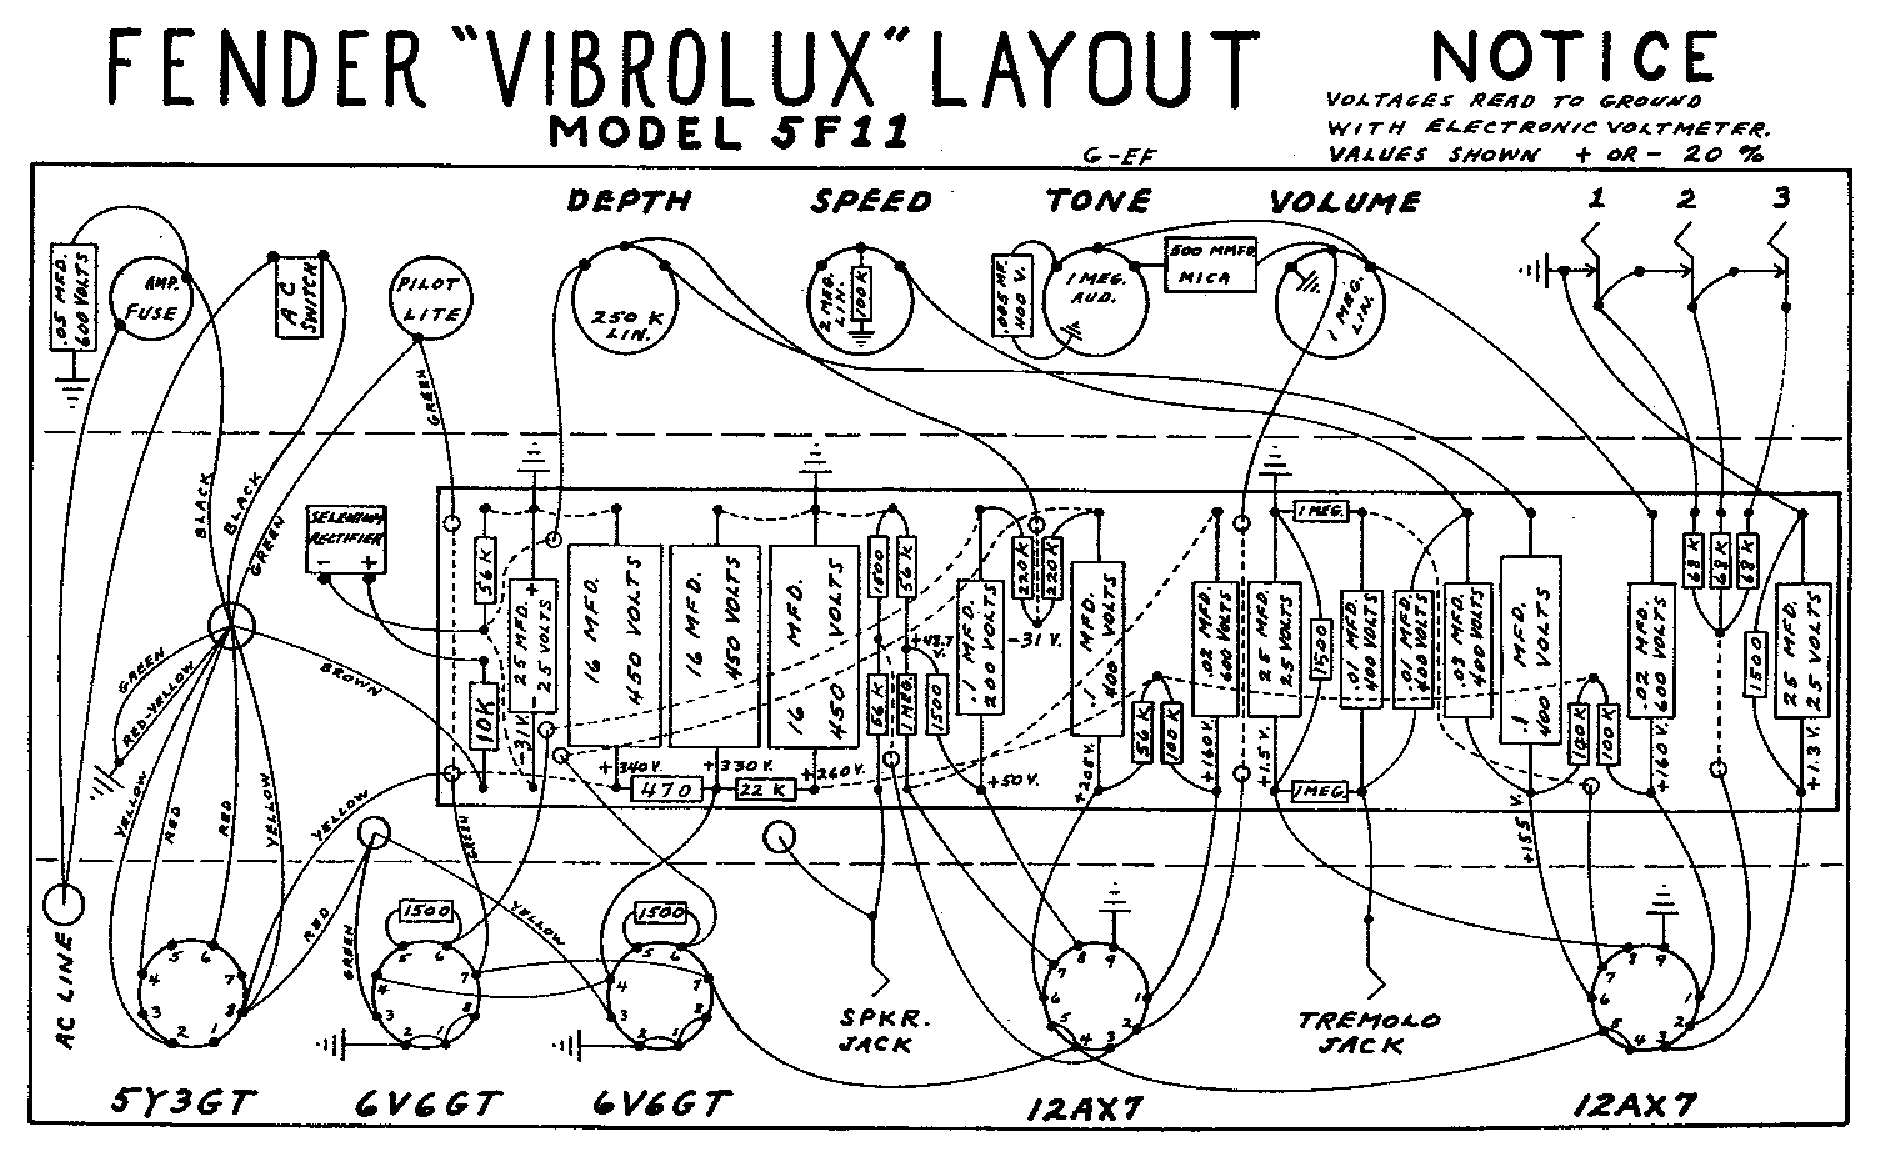 FENDER VIBROLUX-5F11-LAYOUT Service Manual download